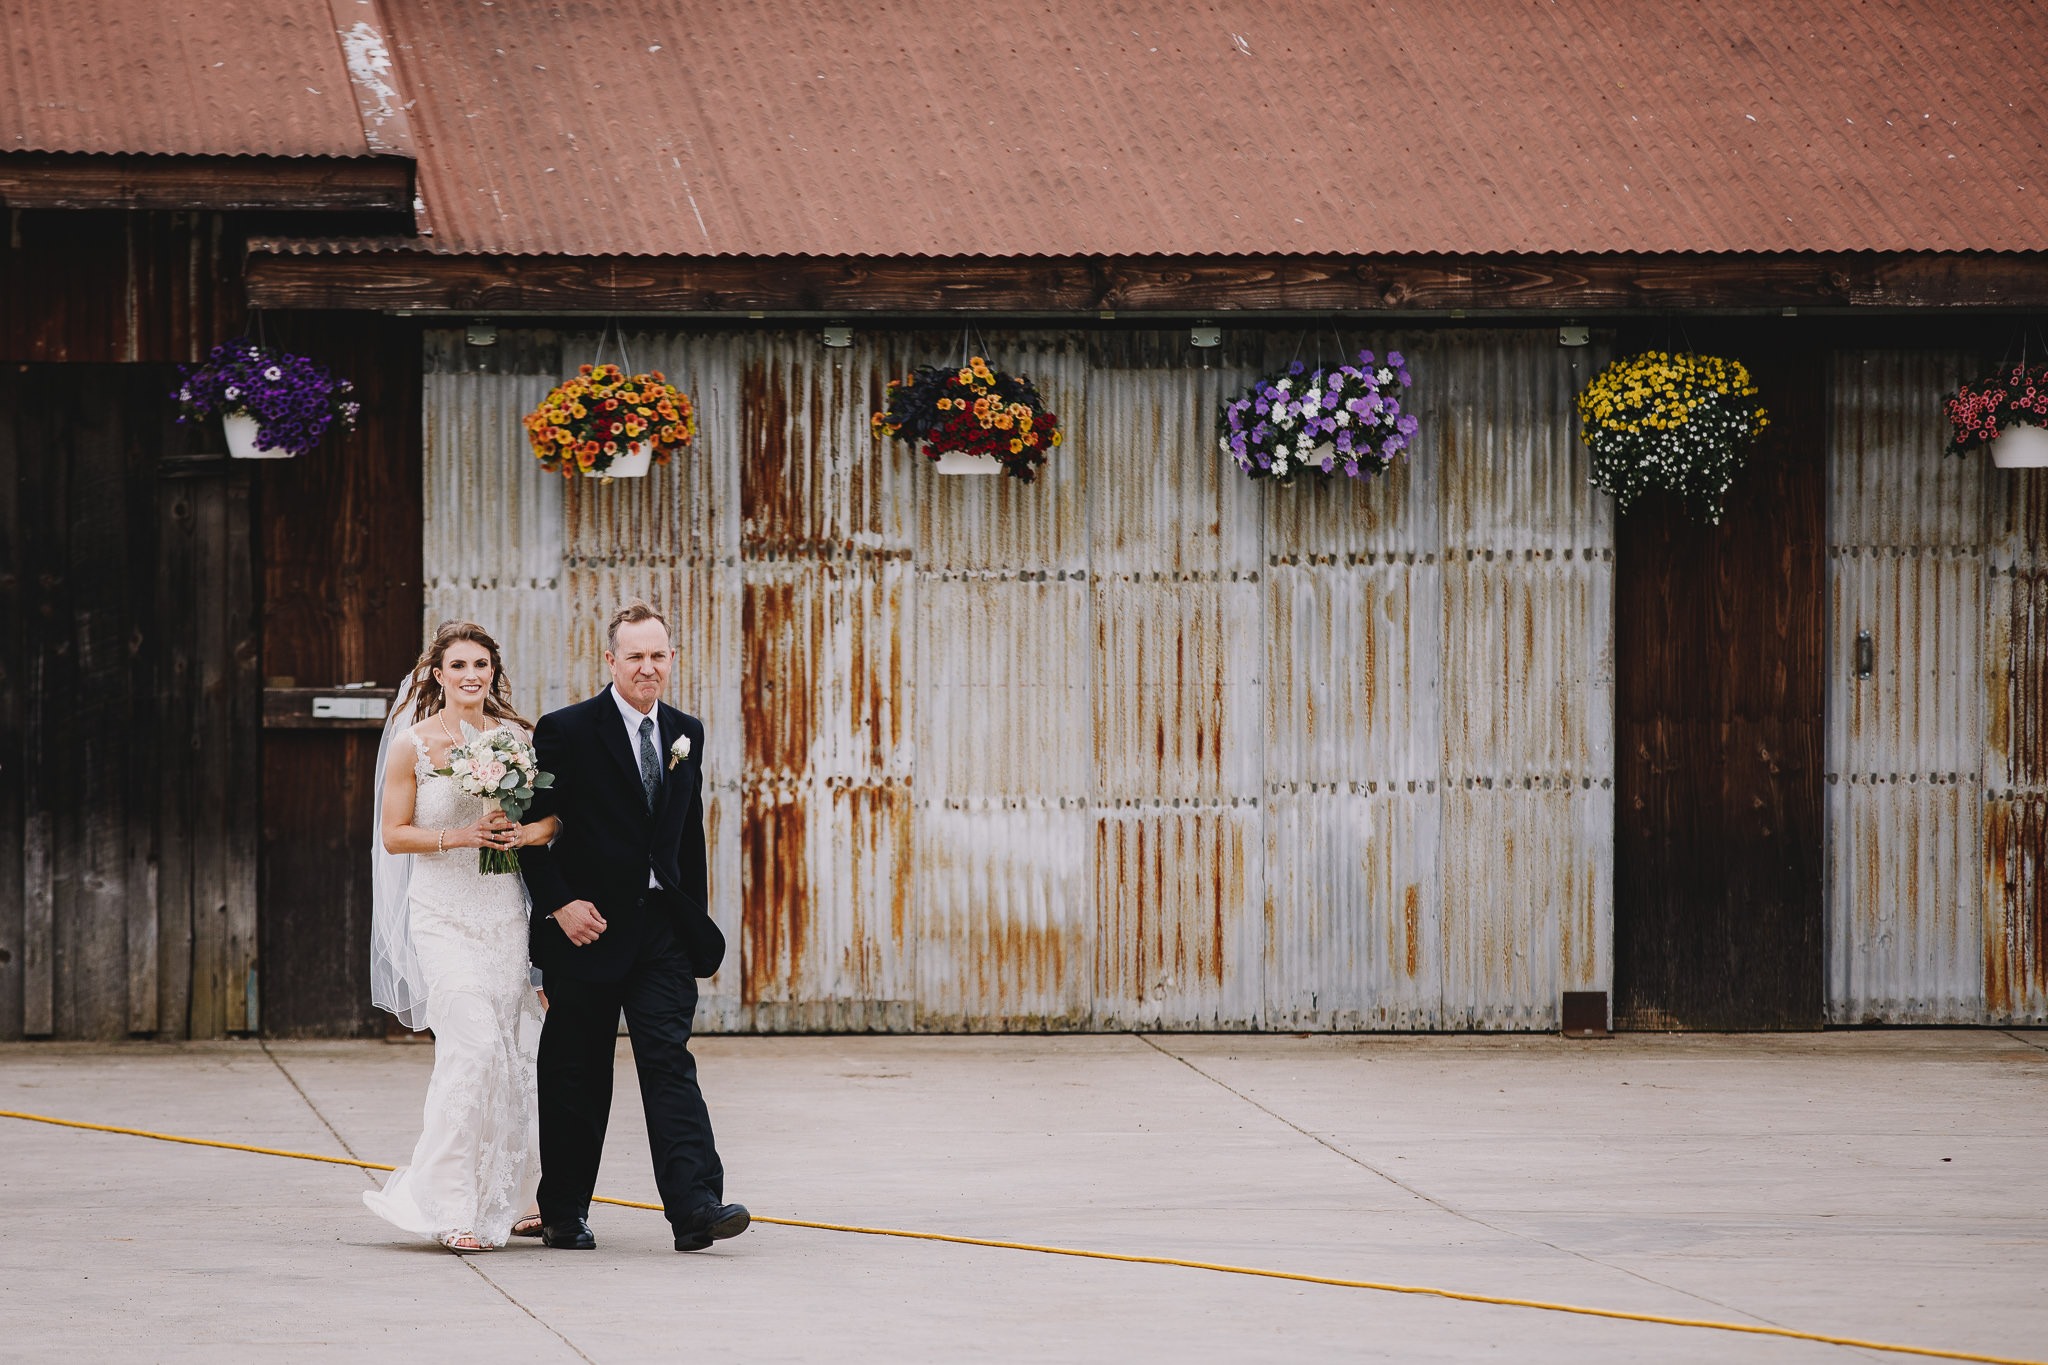 Archer Inspired Photography Kirigin Cellars Gilroy California SoCal Orange County Los Angeles Long Beach Lifestyle Wedding Elopement Engagement Photographer-112.jpg